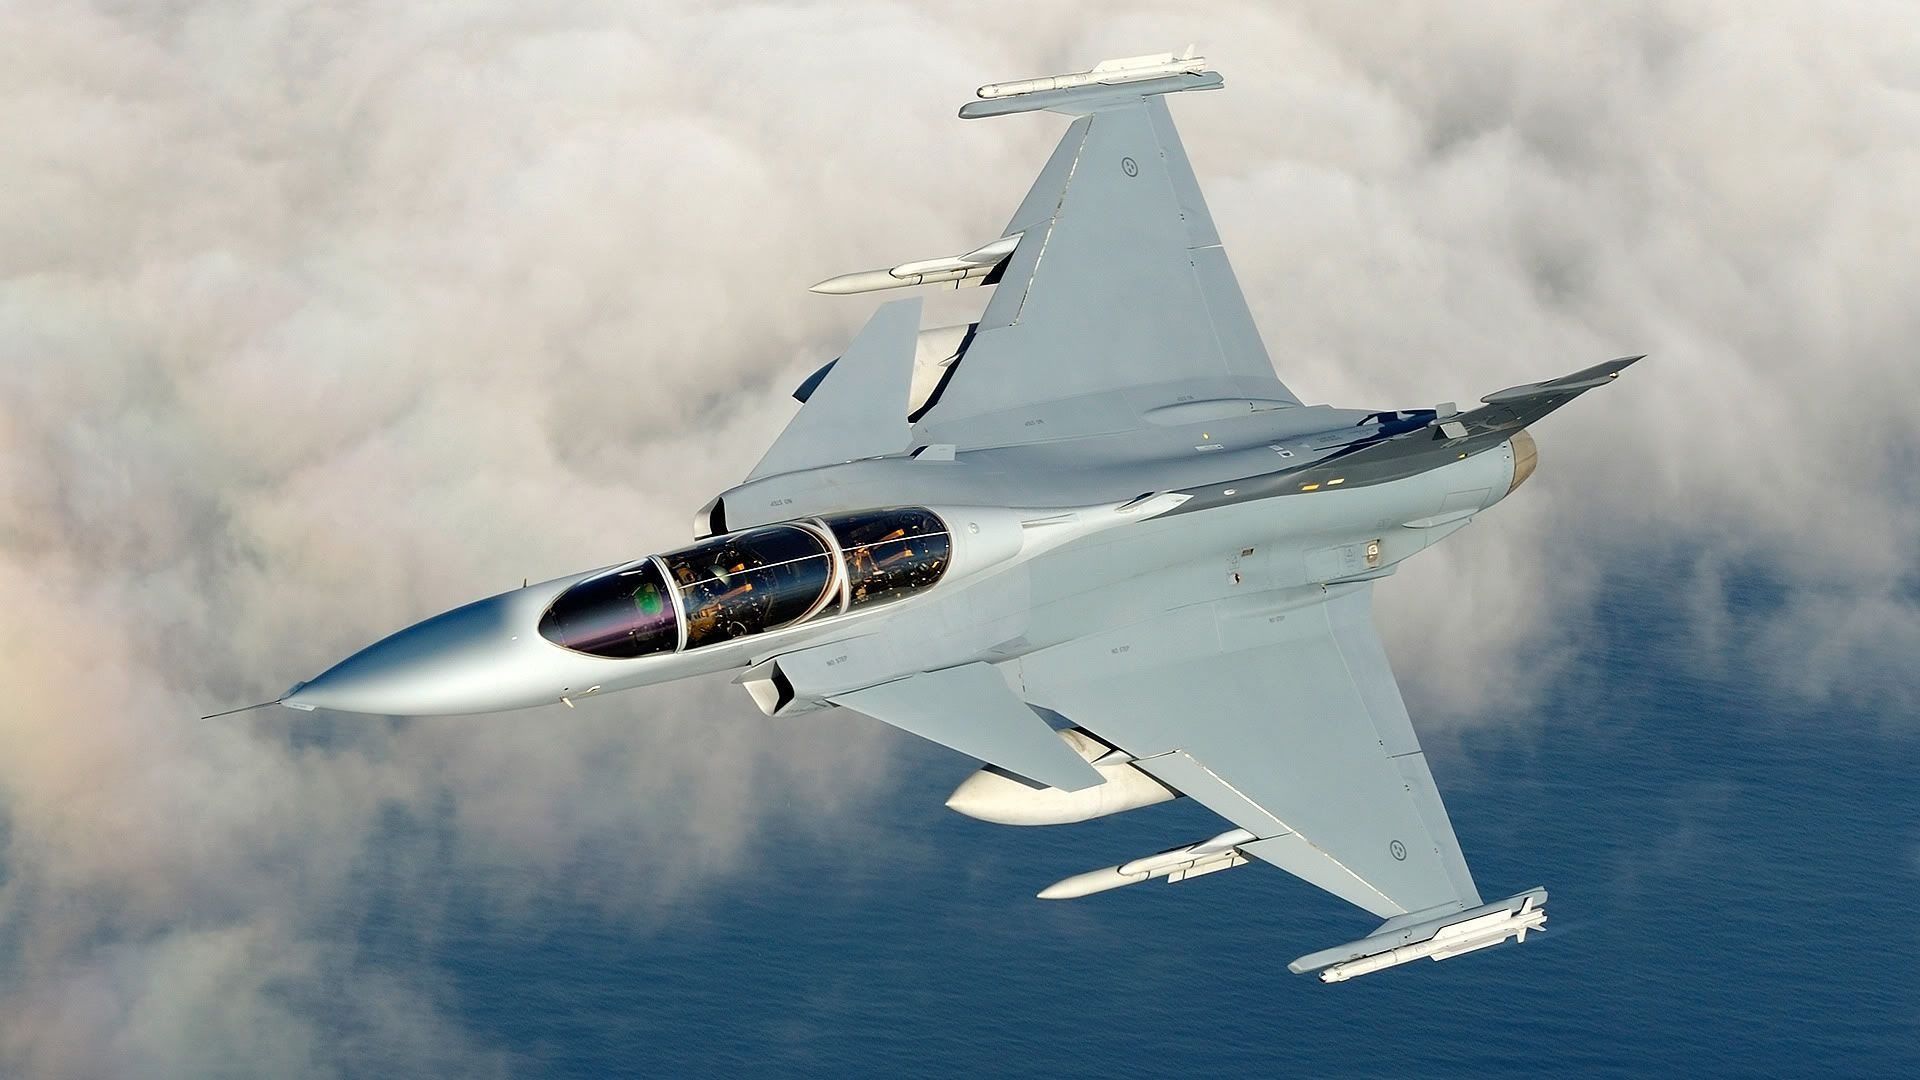 aircraft image | aircraft wallpapers - hd wallpapers - widescreen